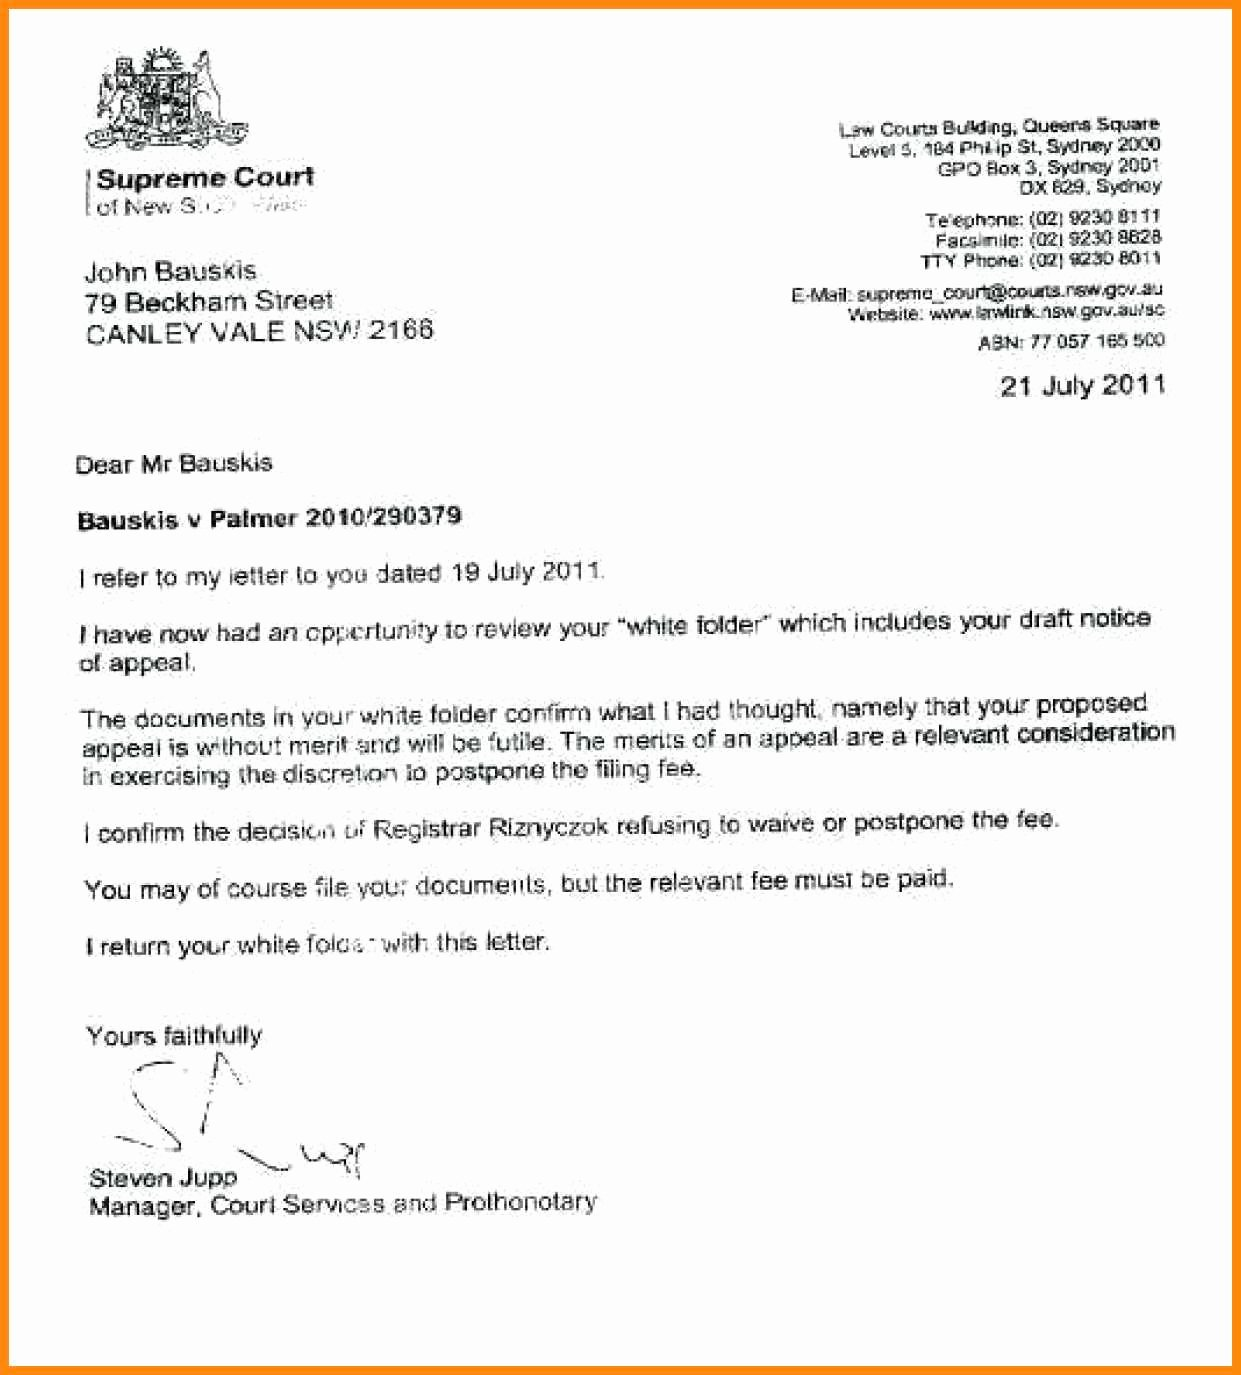 Sample Jury Excuse Letter Beautiful 10 Sample Letter for Jury Duty Excuse